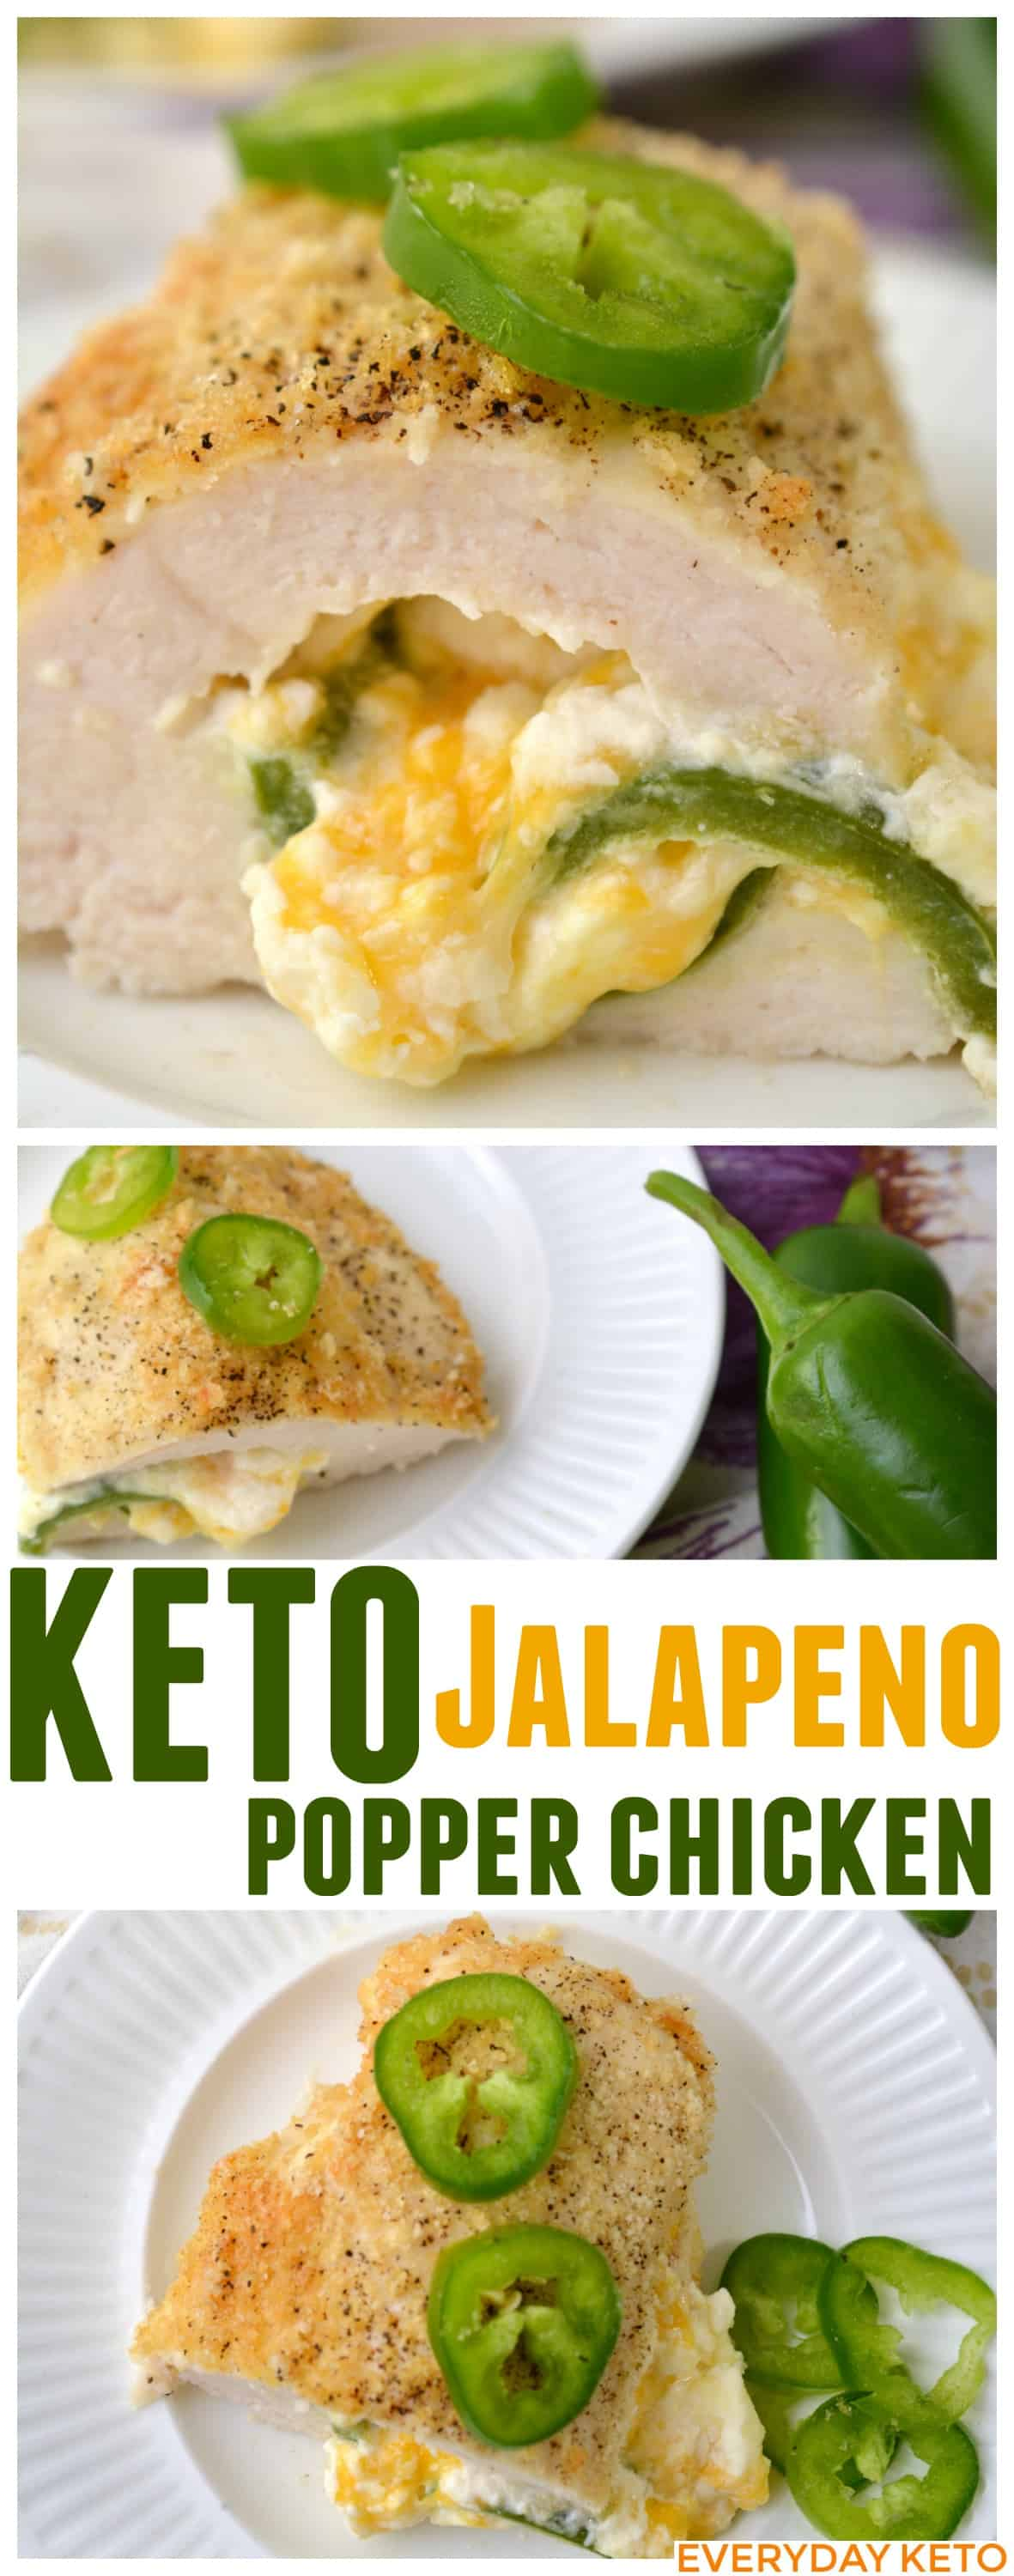 jalapeno popper chicken keto recipe